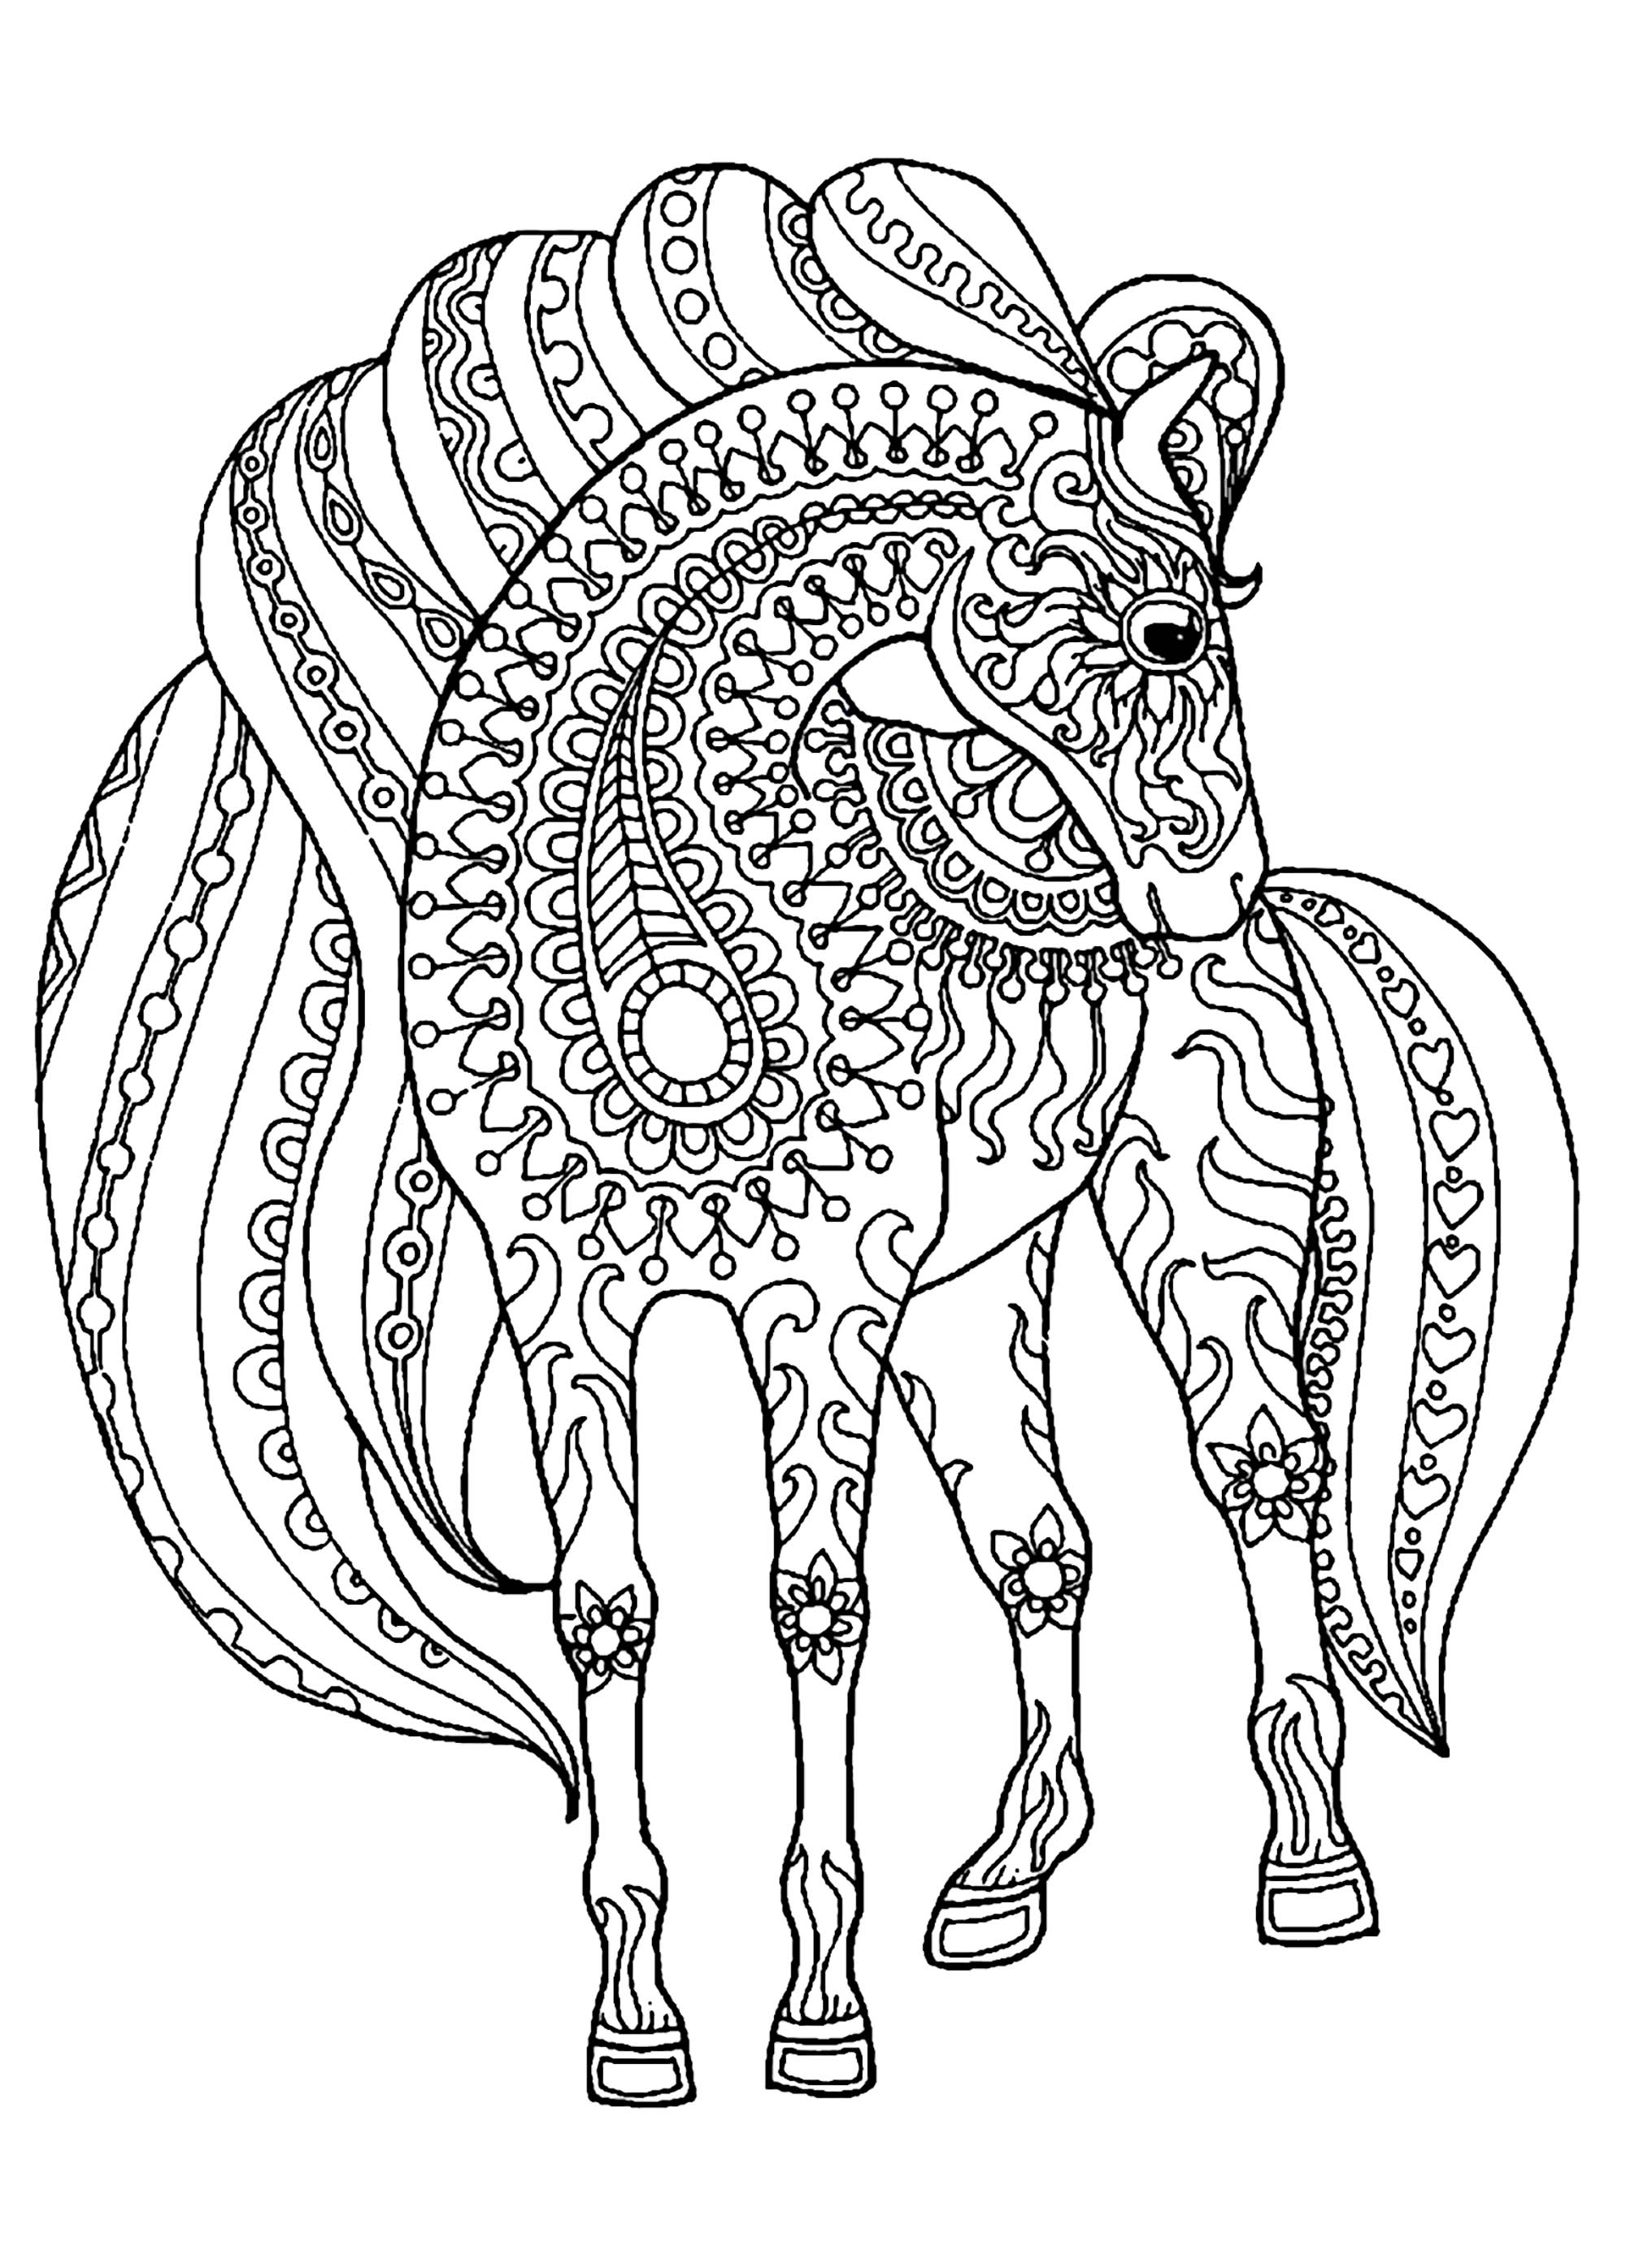 Horse simple zentangle patterns - Horses Adult Coloring Pages